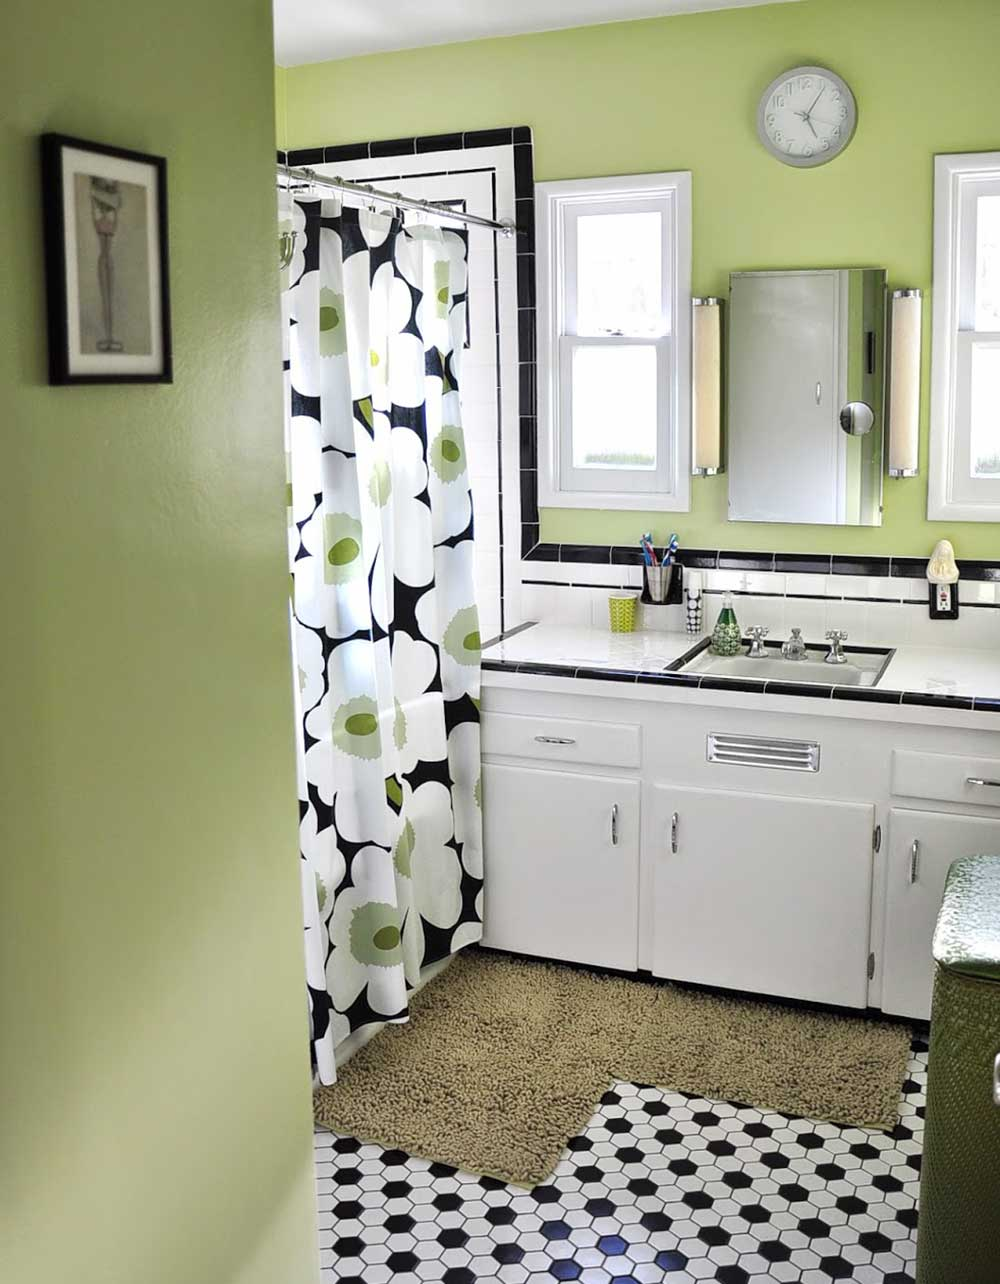 Classic Black And White Bathroom Designs : Dawn creates a classic black and white tile bathroom